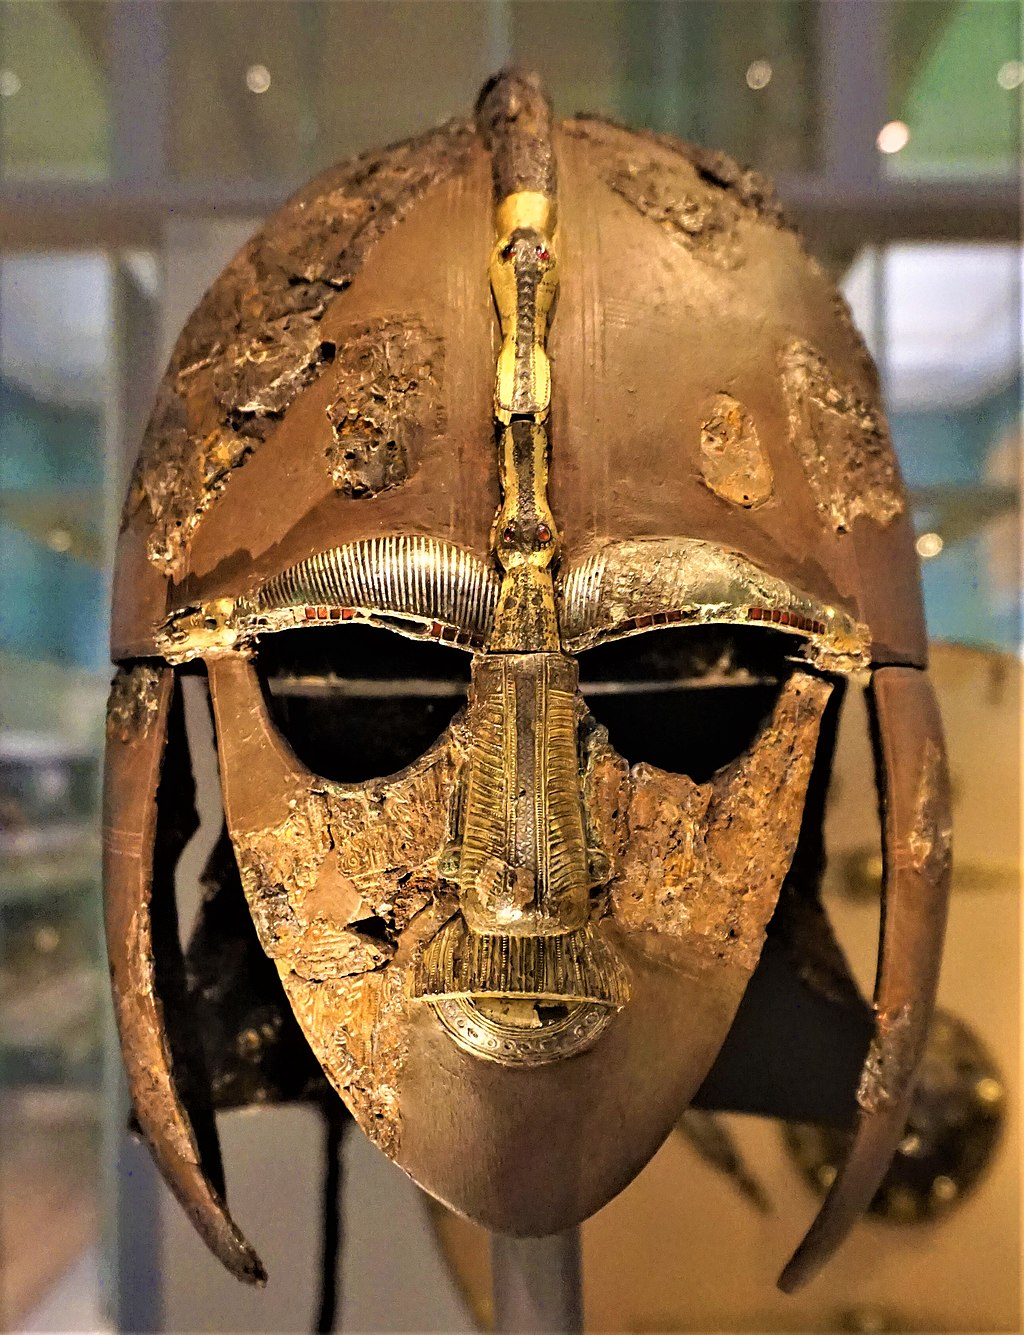 Sutton Hoo Ship Burial - Helmet